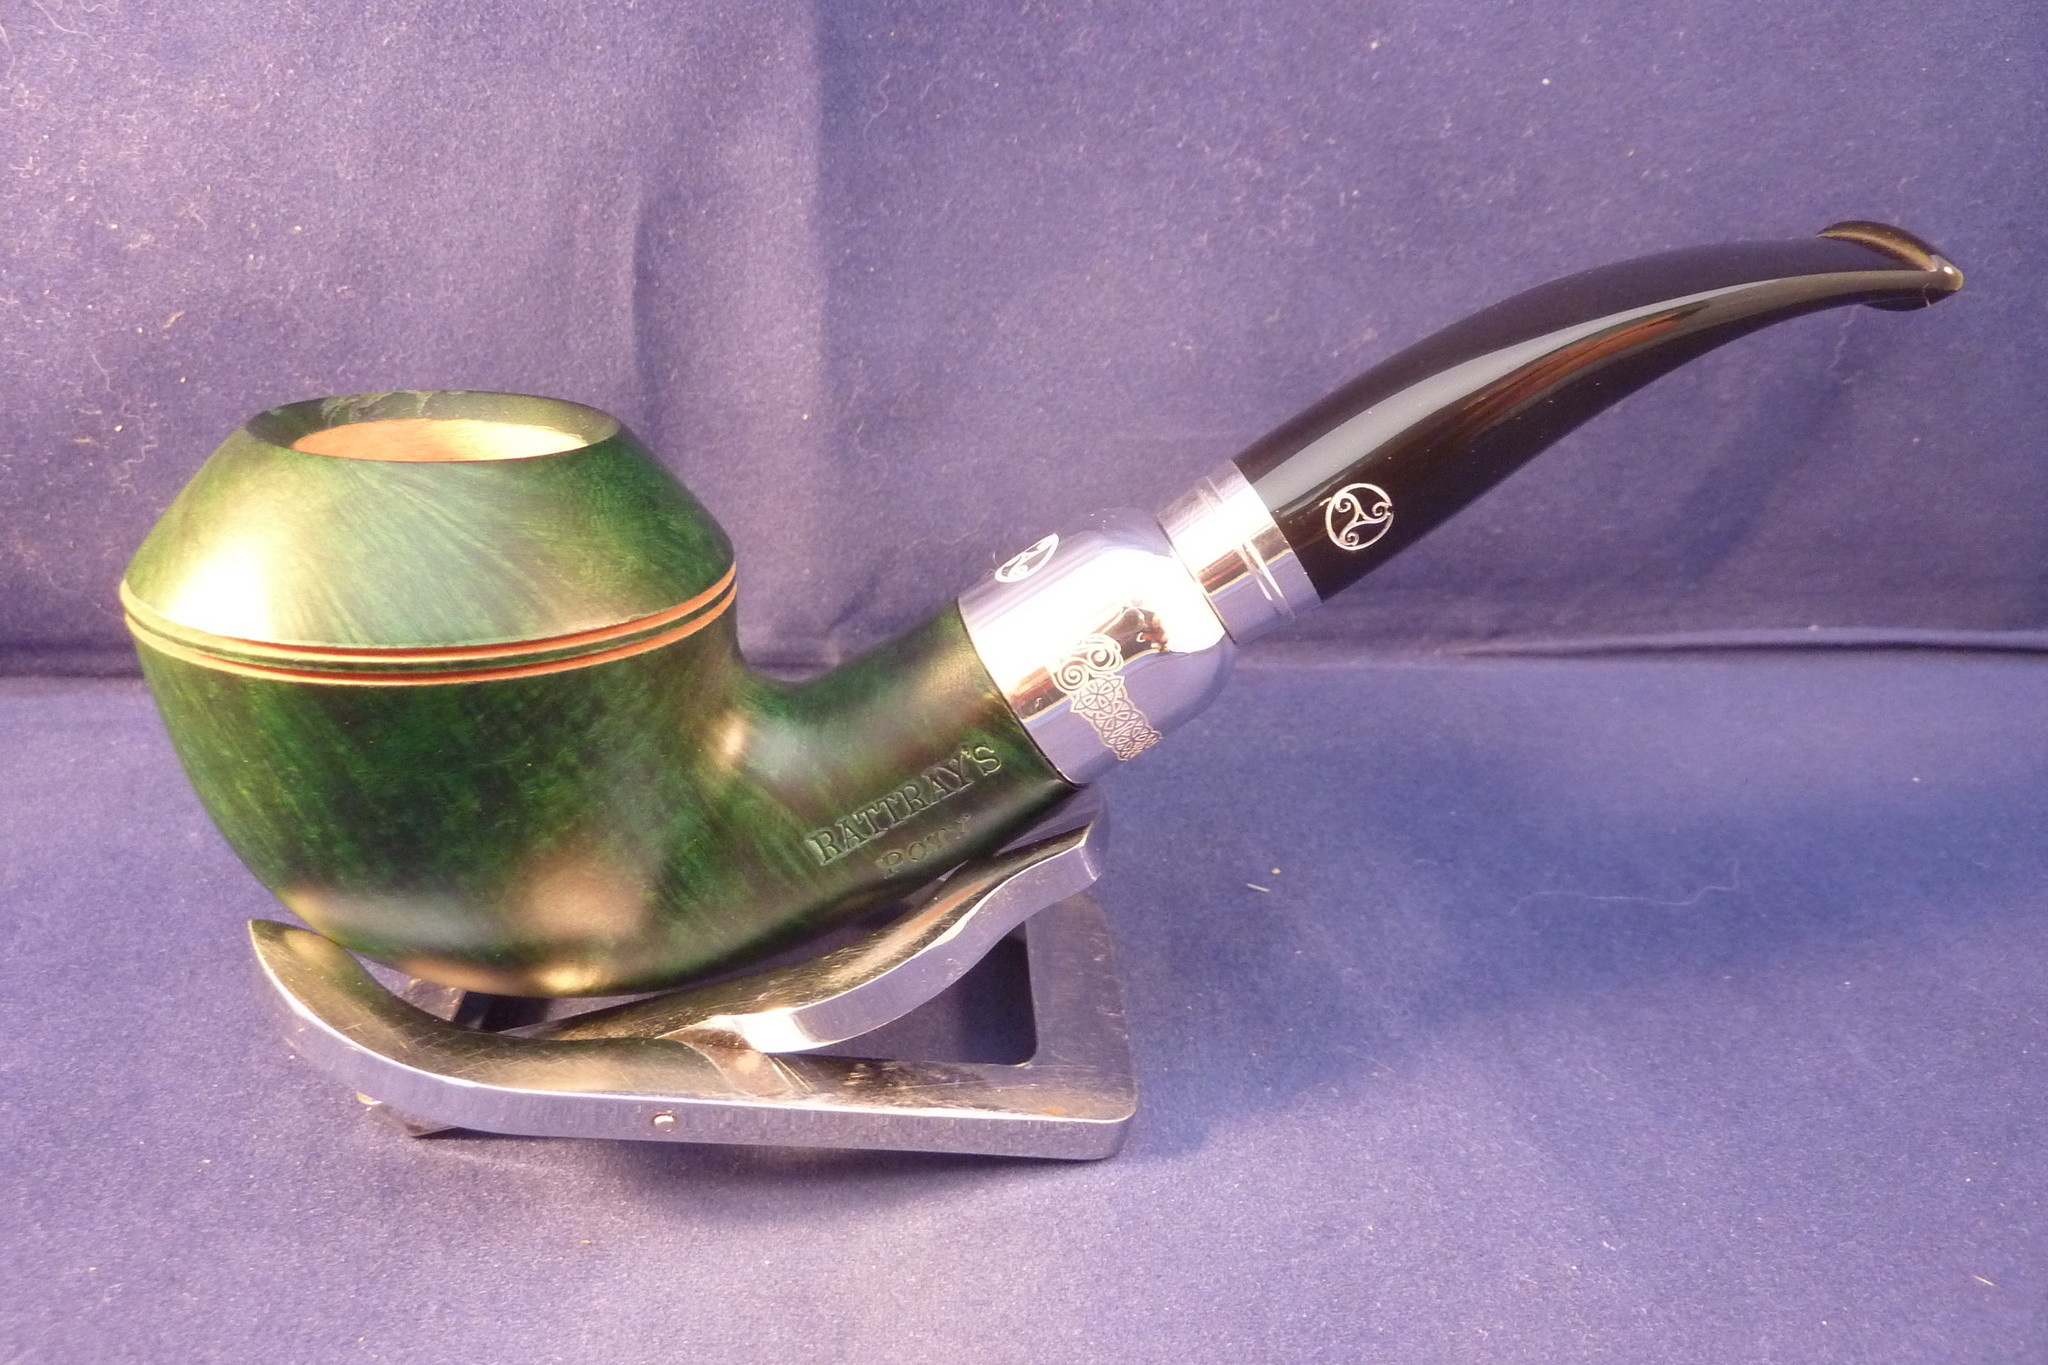 Sold Smoking Pipe Rattray's Pipe of the Year 2020 Green